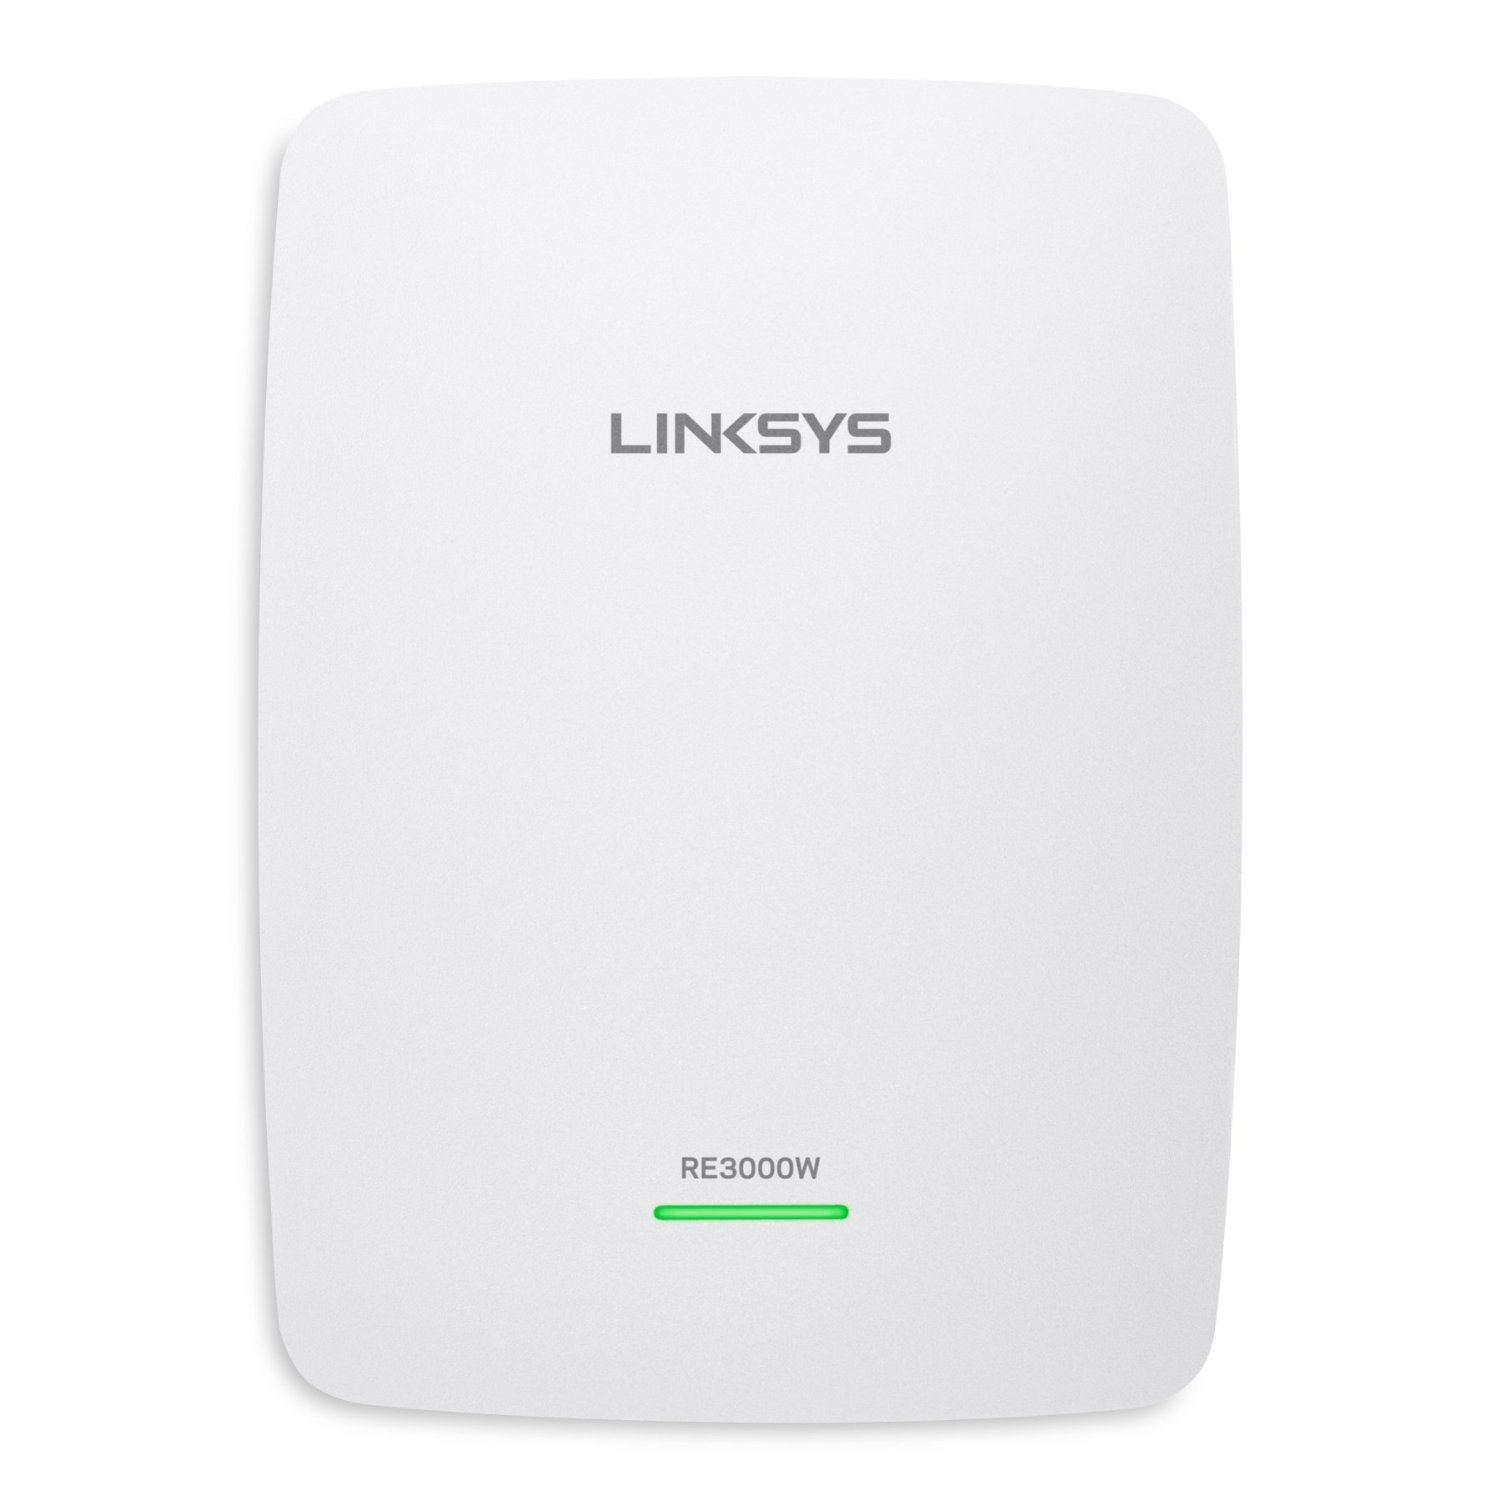 Linksys Reset Instructions, Manuals and Default Settings | RouterReset